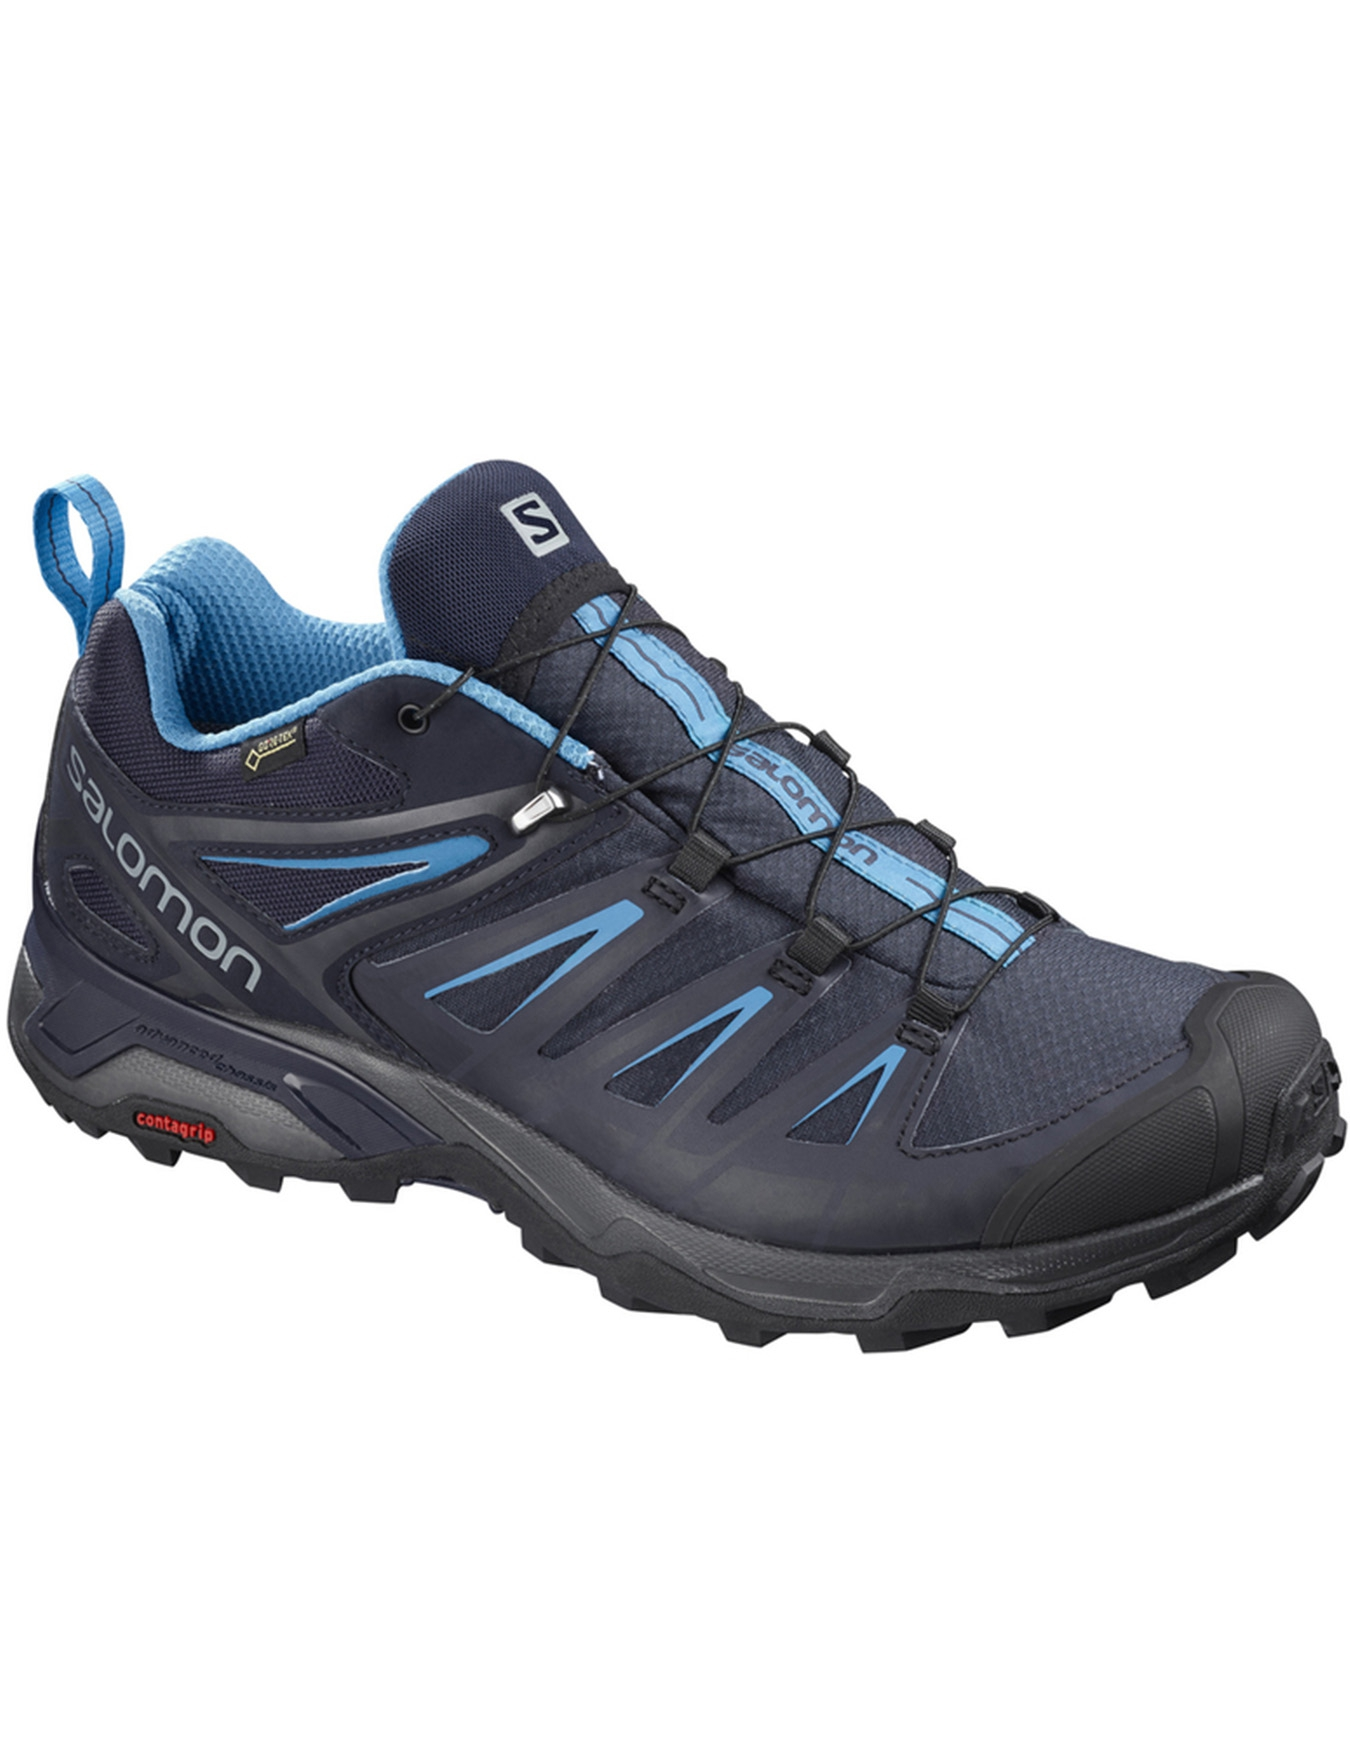 X Ultra 3 GTX® GrauNight SkyHawaii